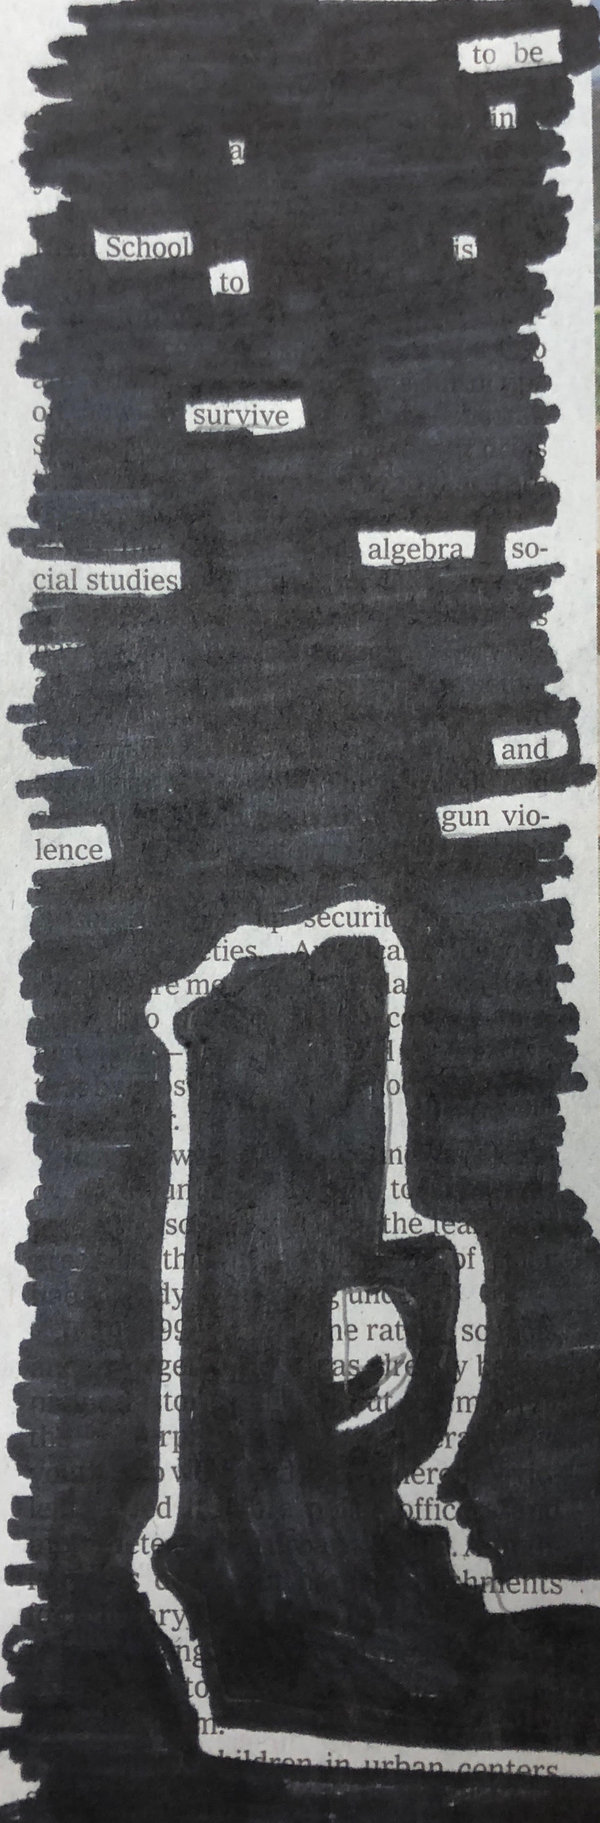 Winners of Our Blackout Poetry Contest - The New York Times